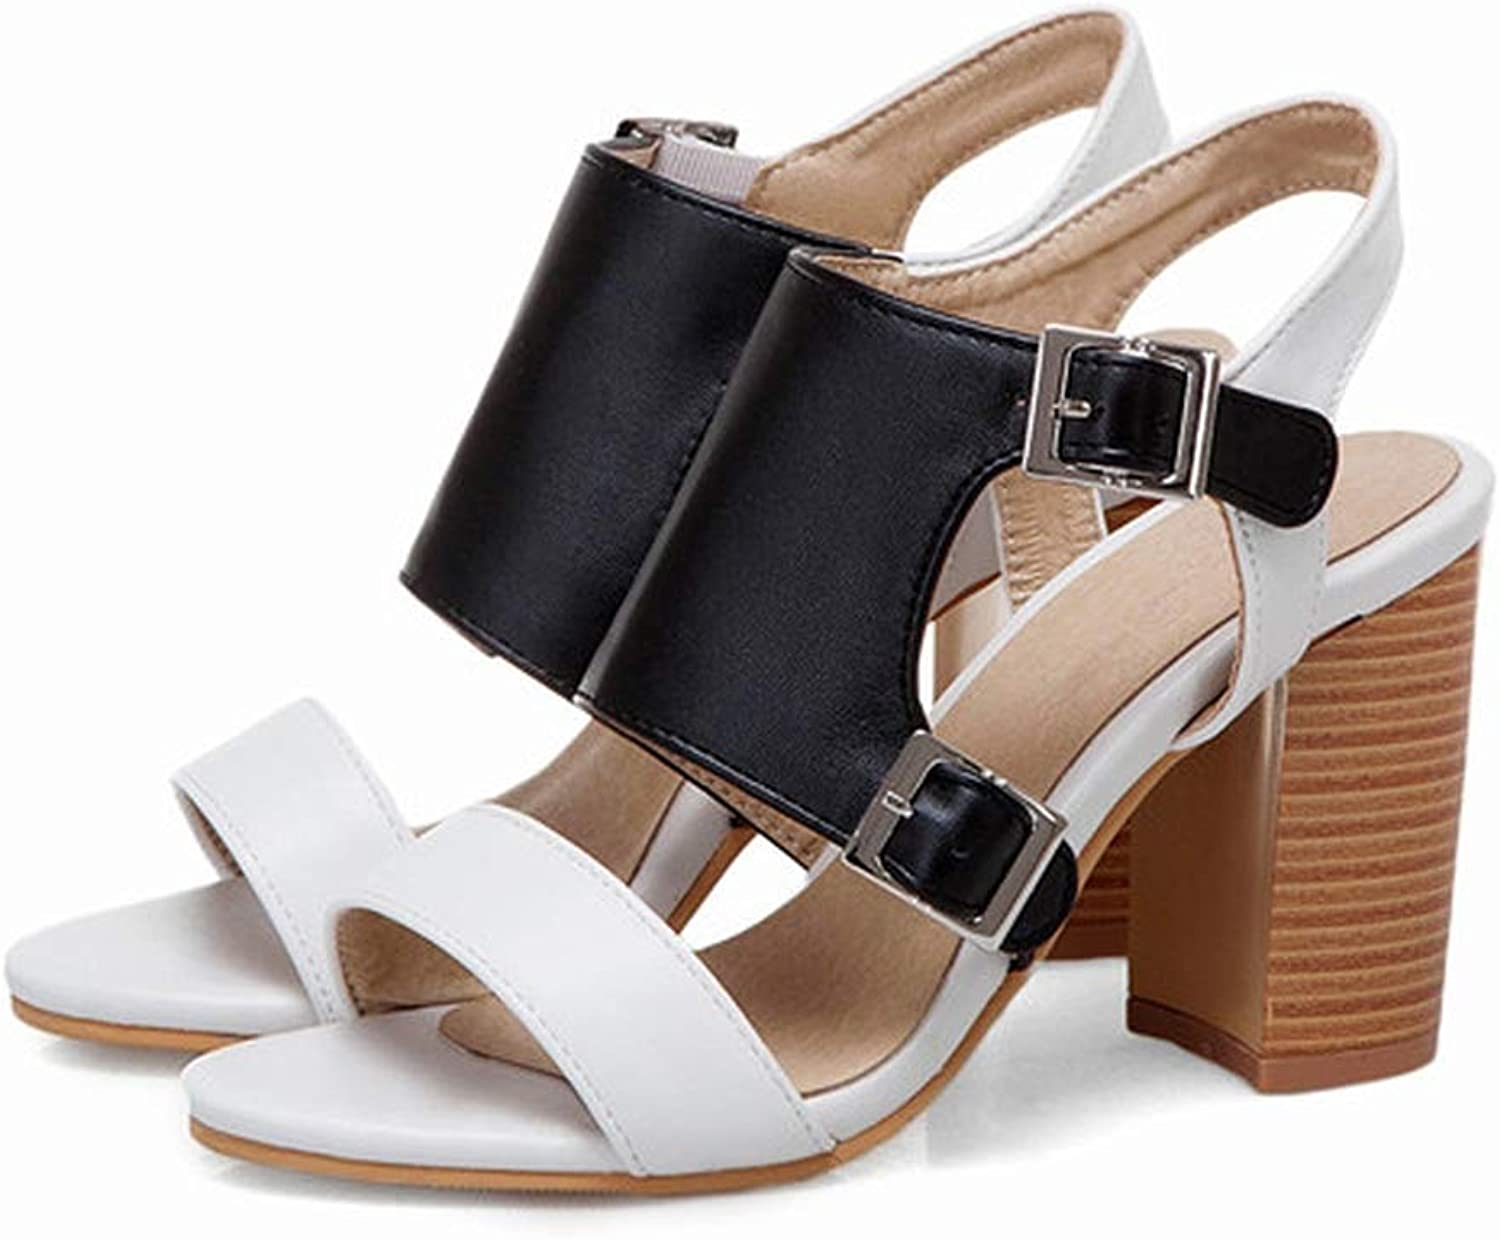 Summer Sandals Sexy Gladiator High Heel Ankle Boots Platform Patchwork Party Wedding shoes